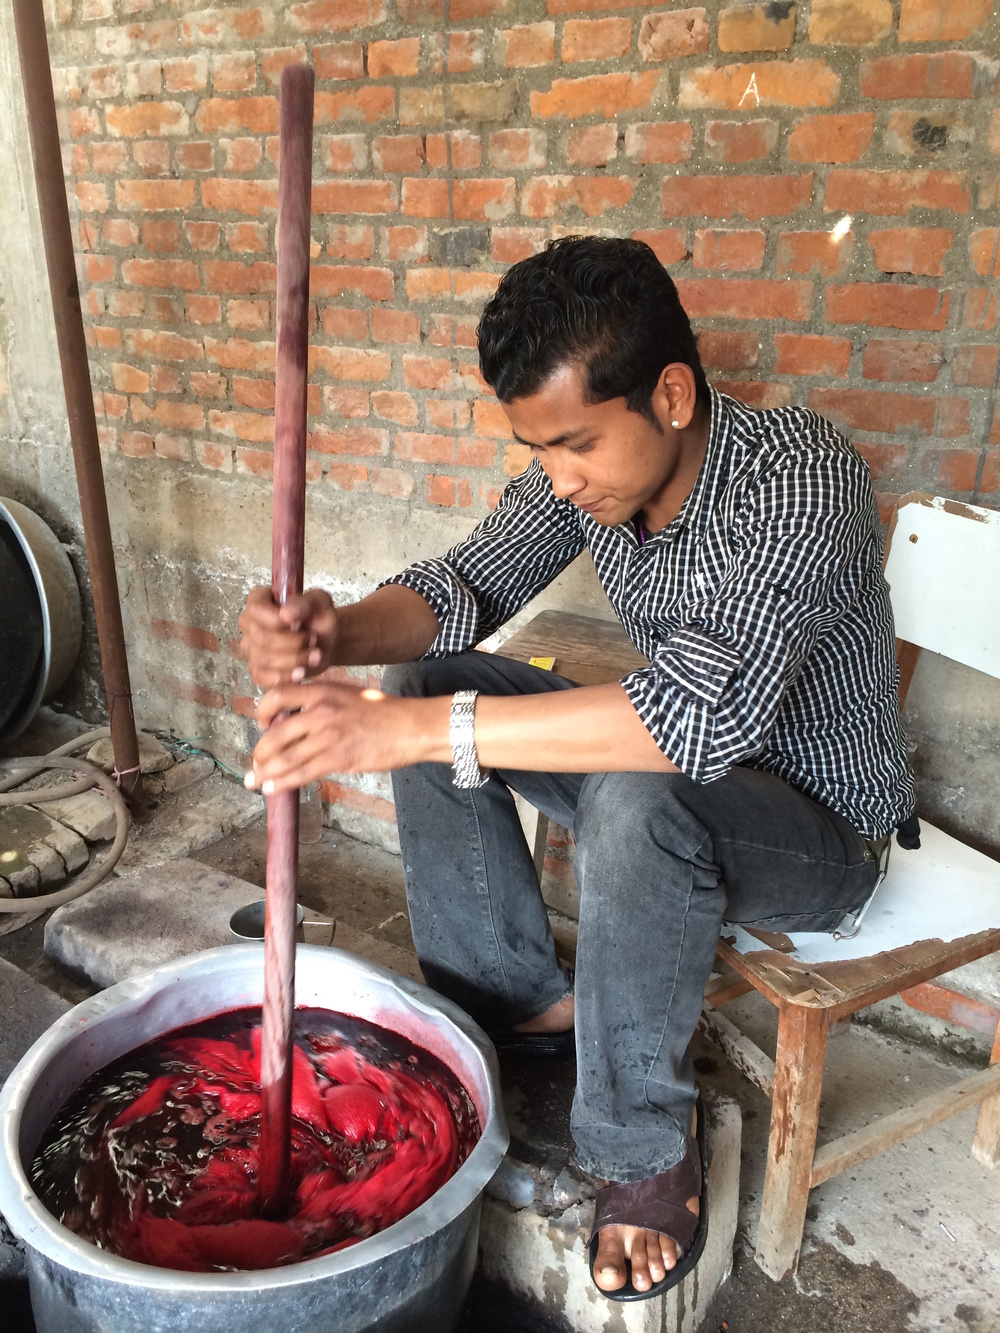 Stirring a throw in the dye bath.